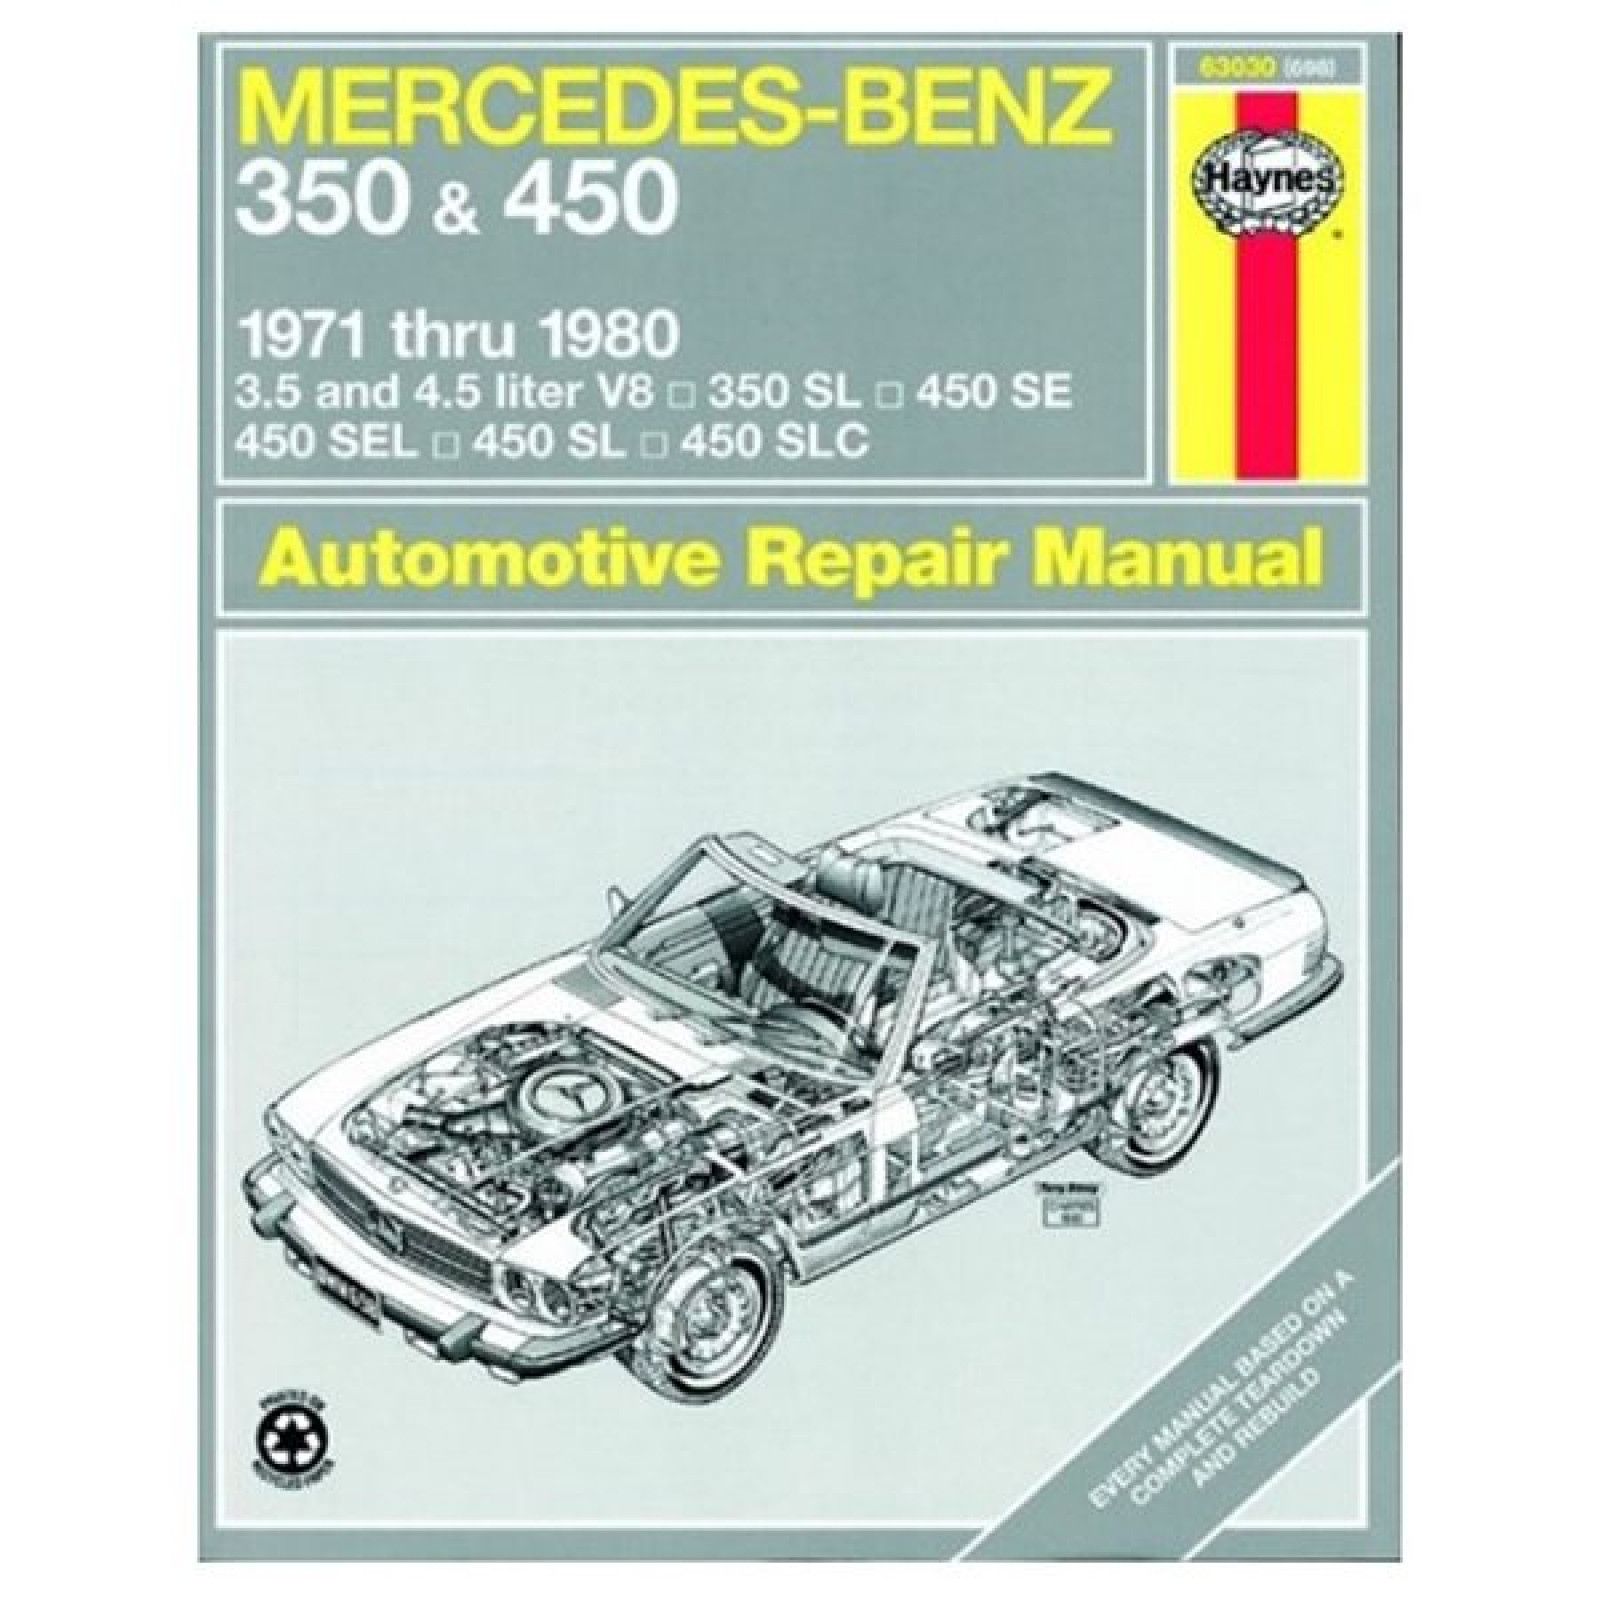 mercedes benz sl 107 280 380 500 owners manual rh theslshop com 2009 mercedes benz slk 350 owners manual 2008 Mercedes SL350